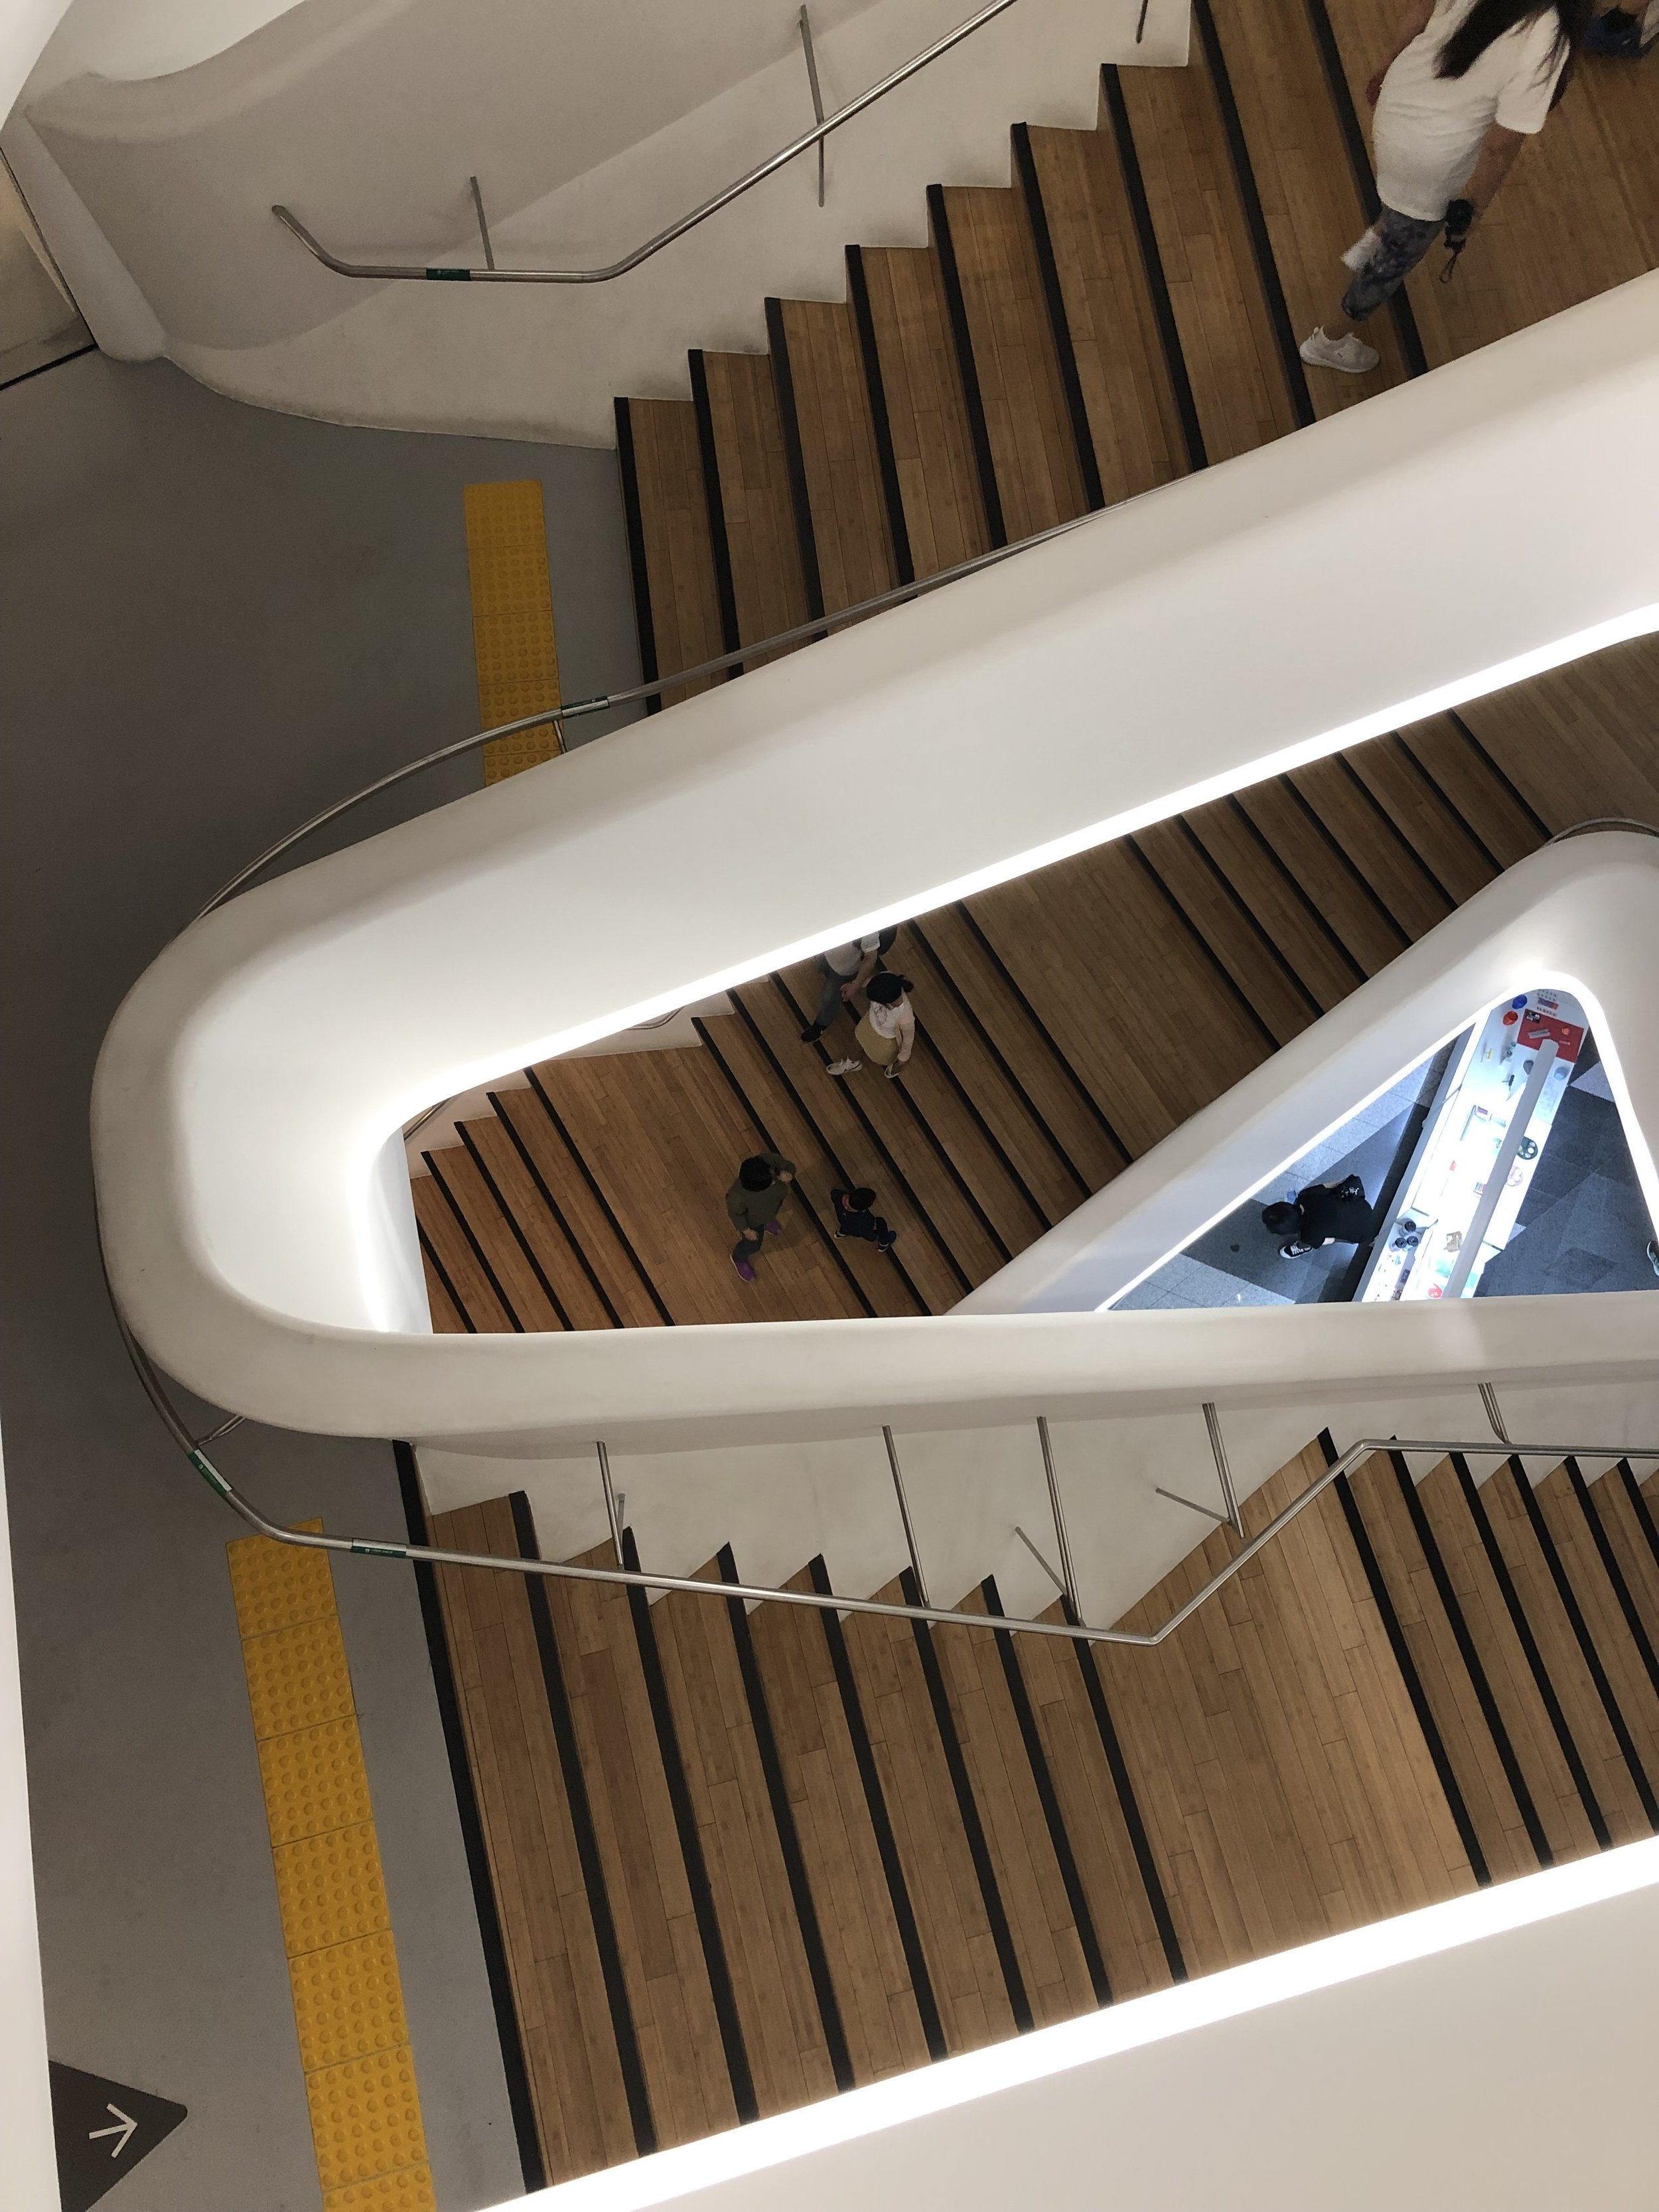 Staircase at Zaha Hadid's last act (DDP in Seoul)